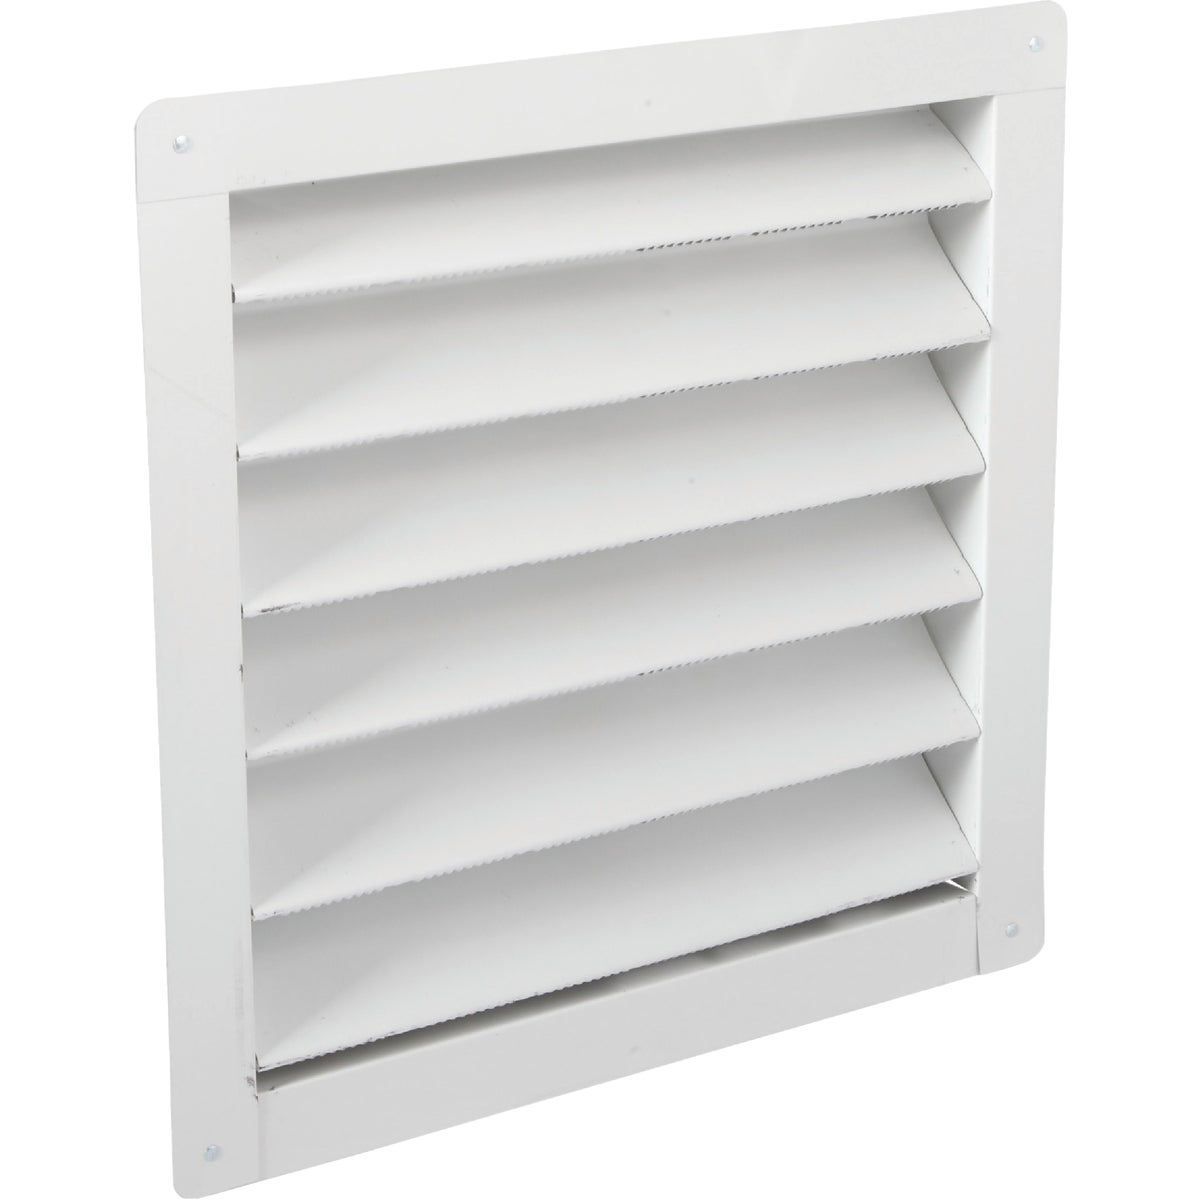 12X12WHT ALM WALL LOUVER - 81202 by Air Vent Inc